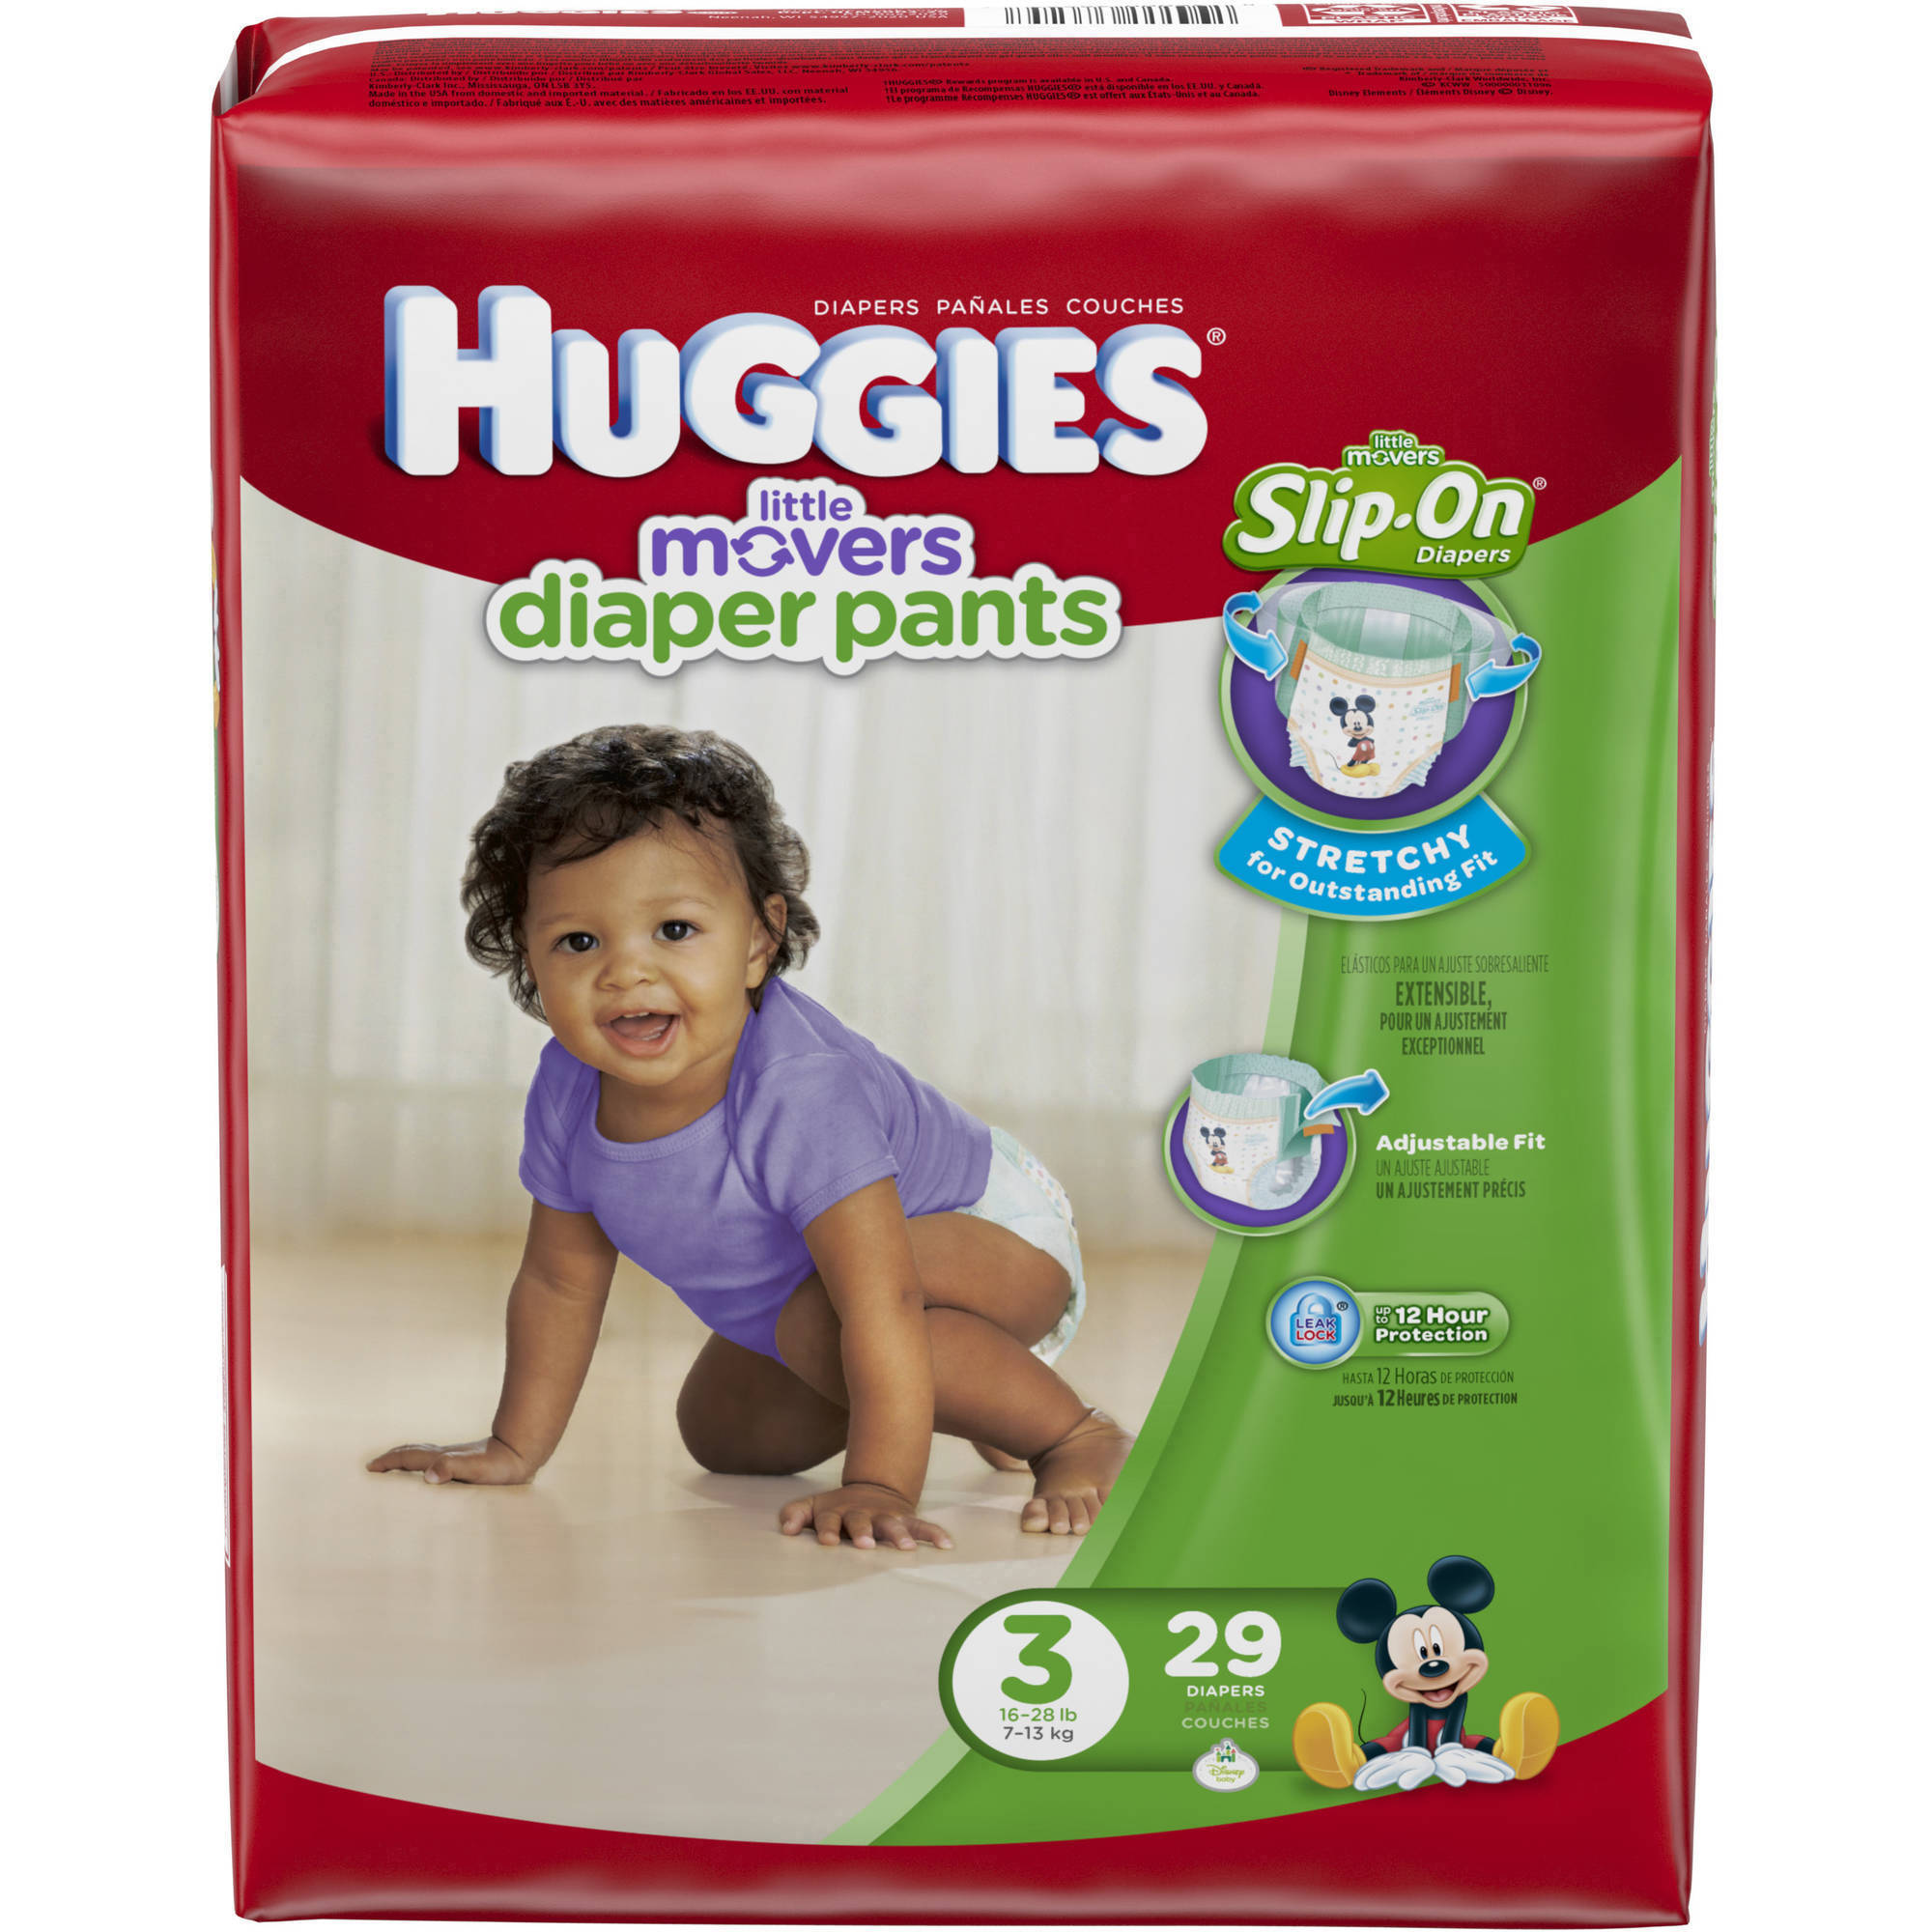 HUGGIES Little Movers Slip-On Diaper Pants, Size 3 (Choose Diaper Count)